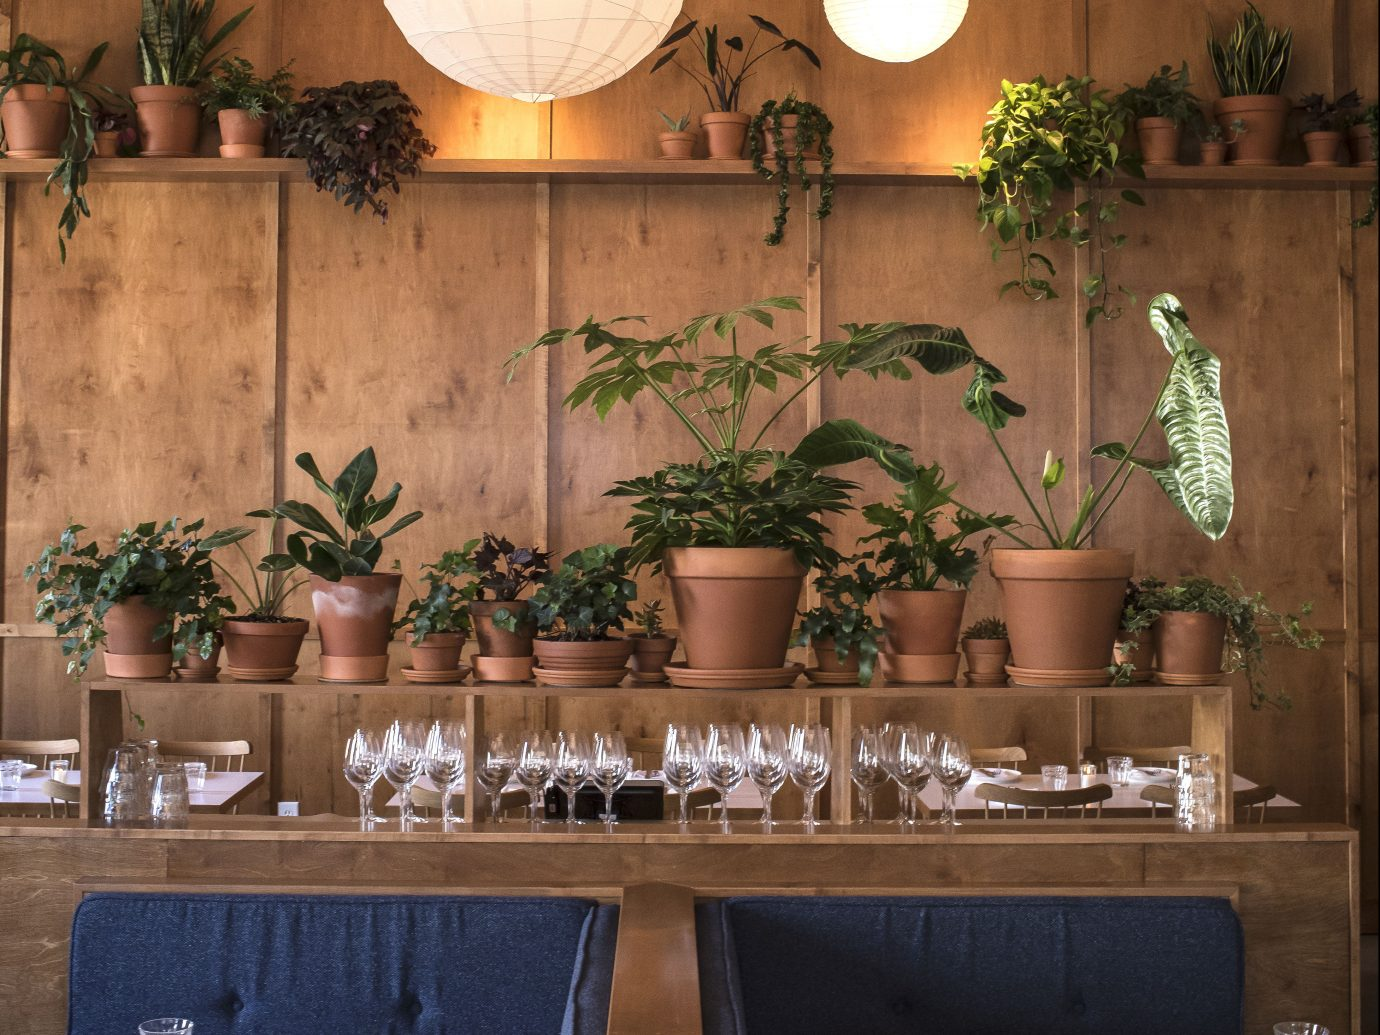 Booths and ledge with potted plants and glassware